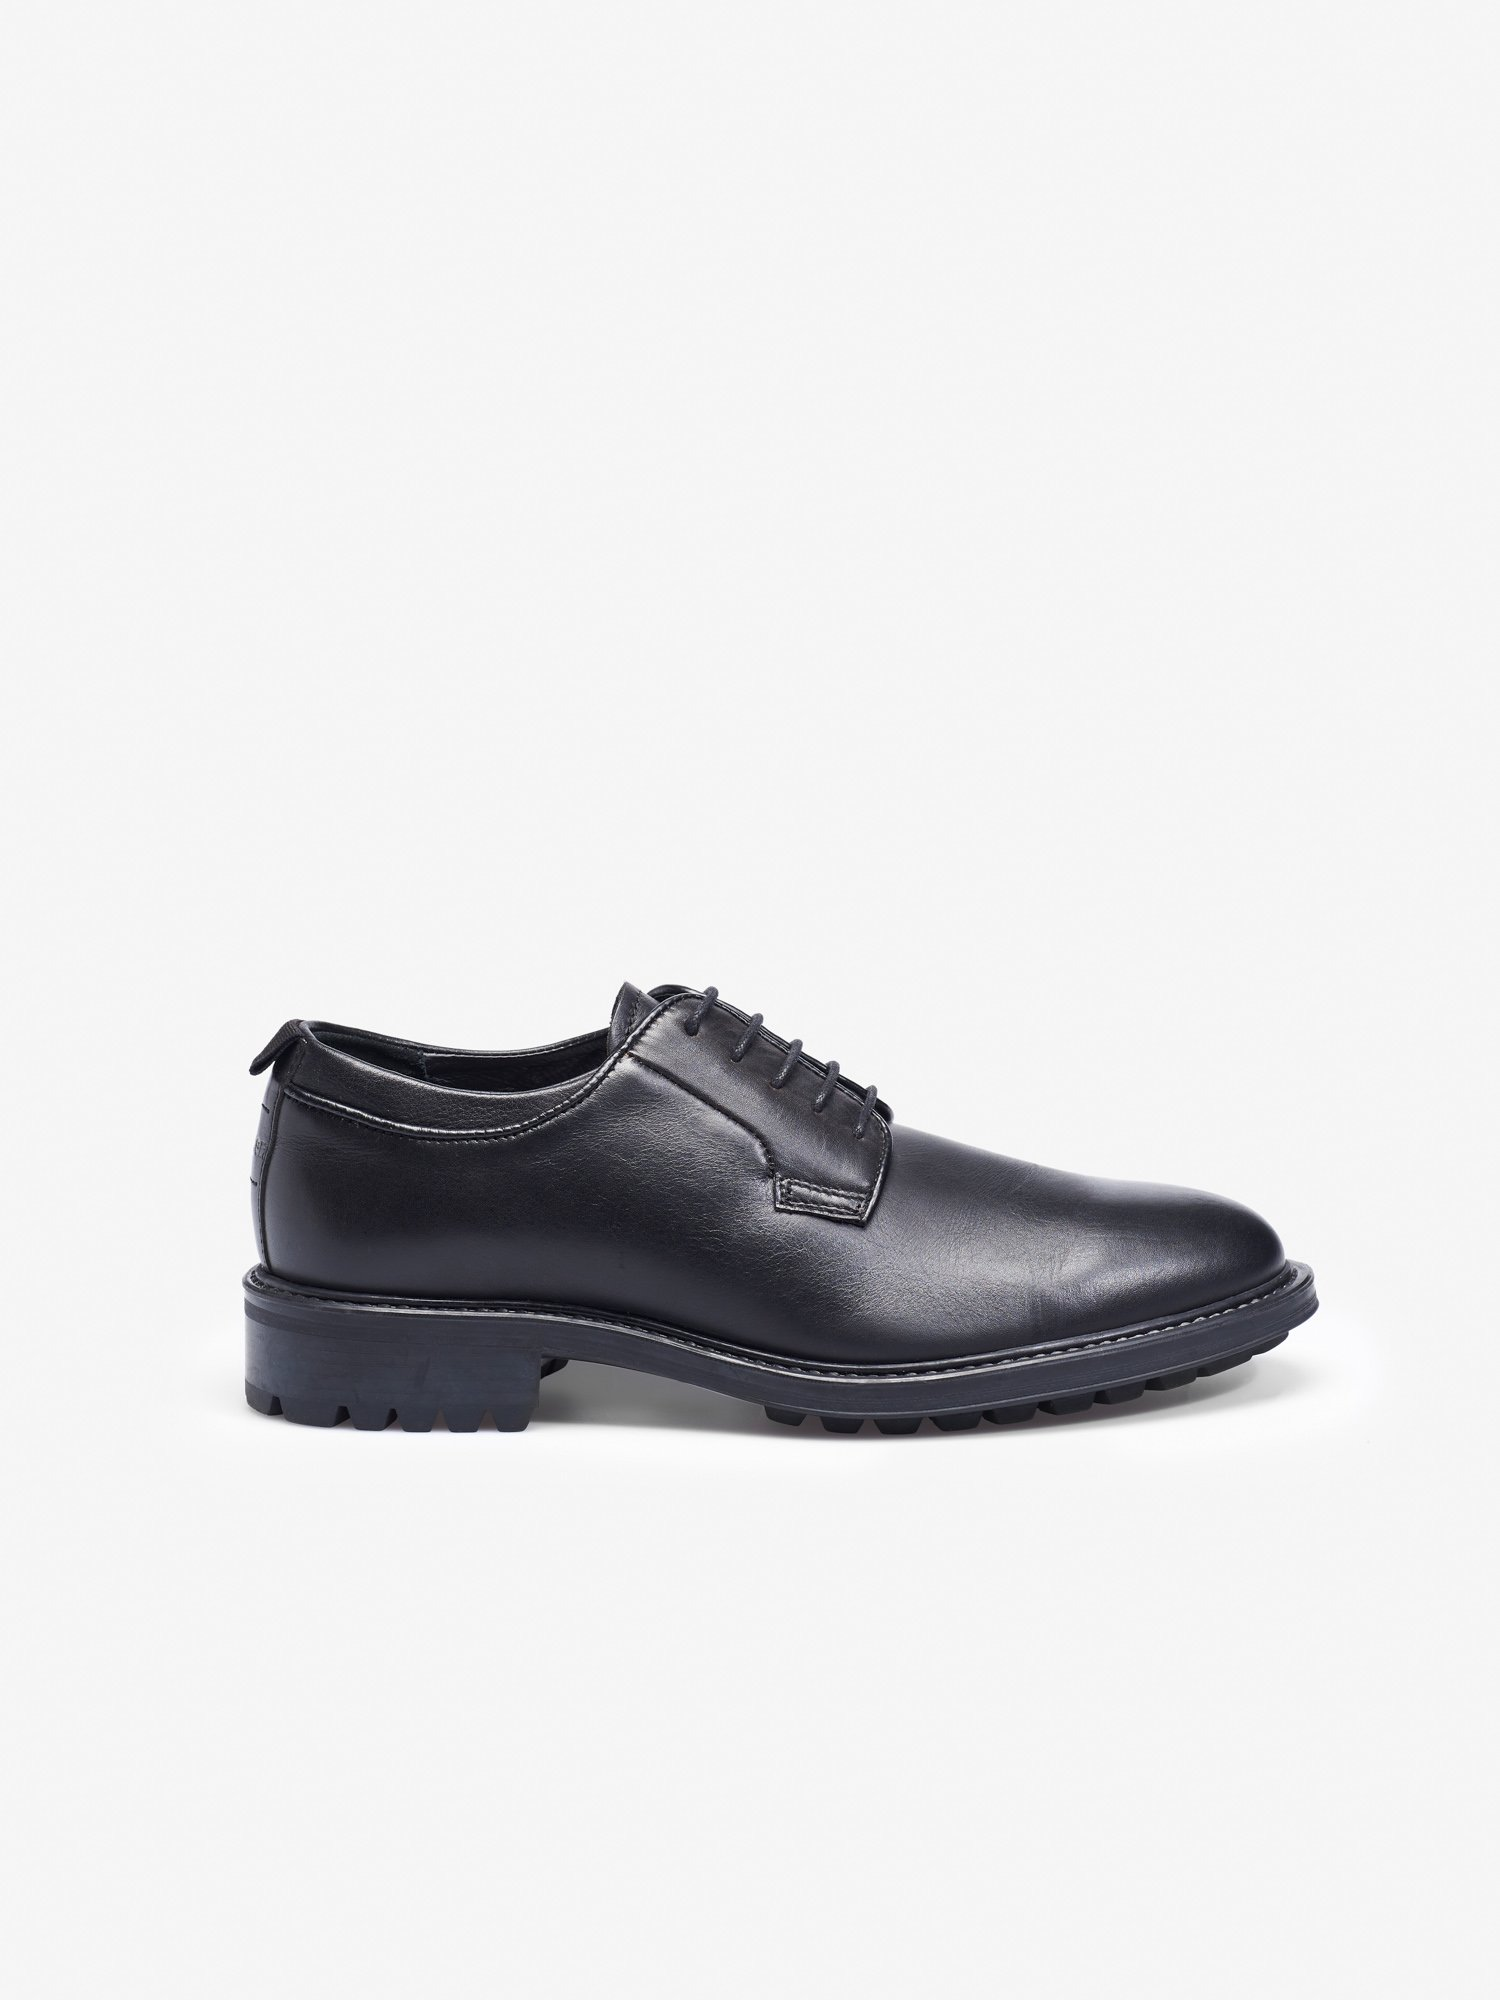 Blauer - LACE UP DERBY  SHOES - Black - Blauer